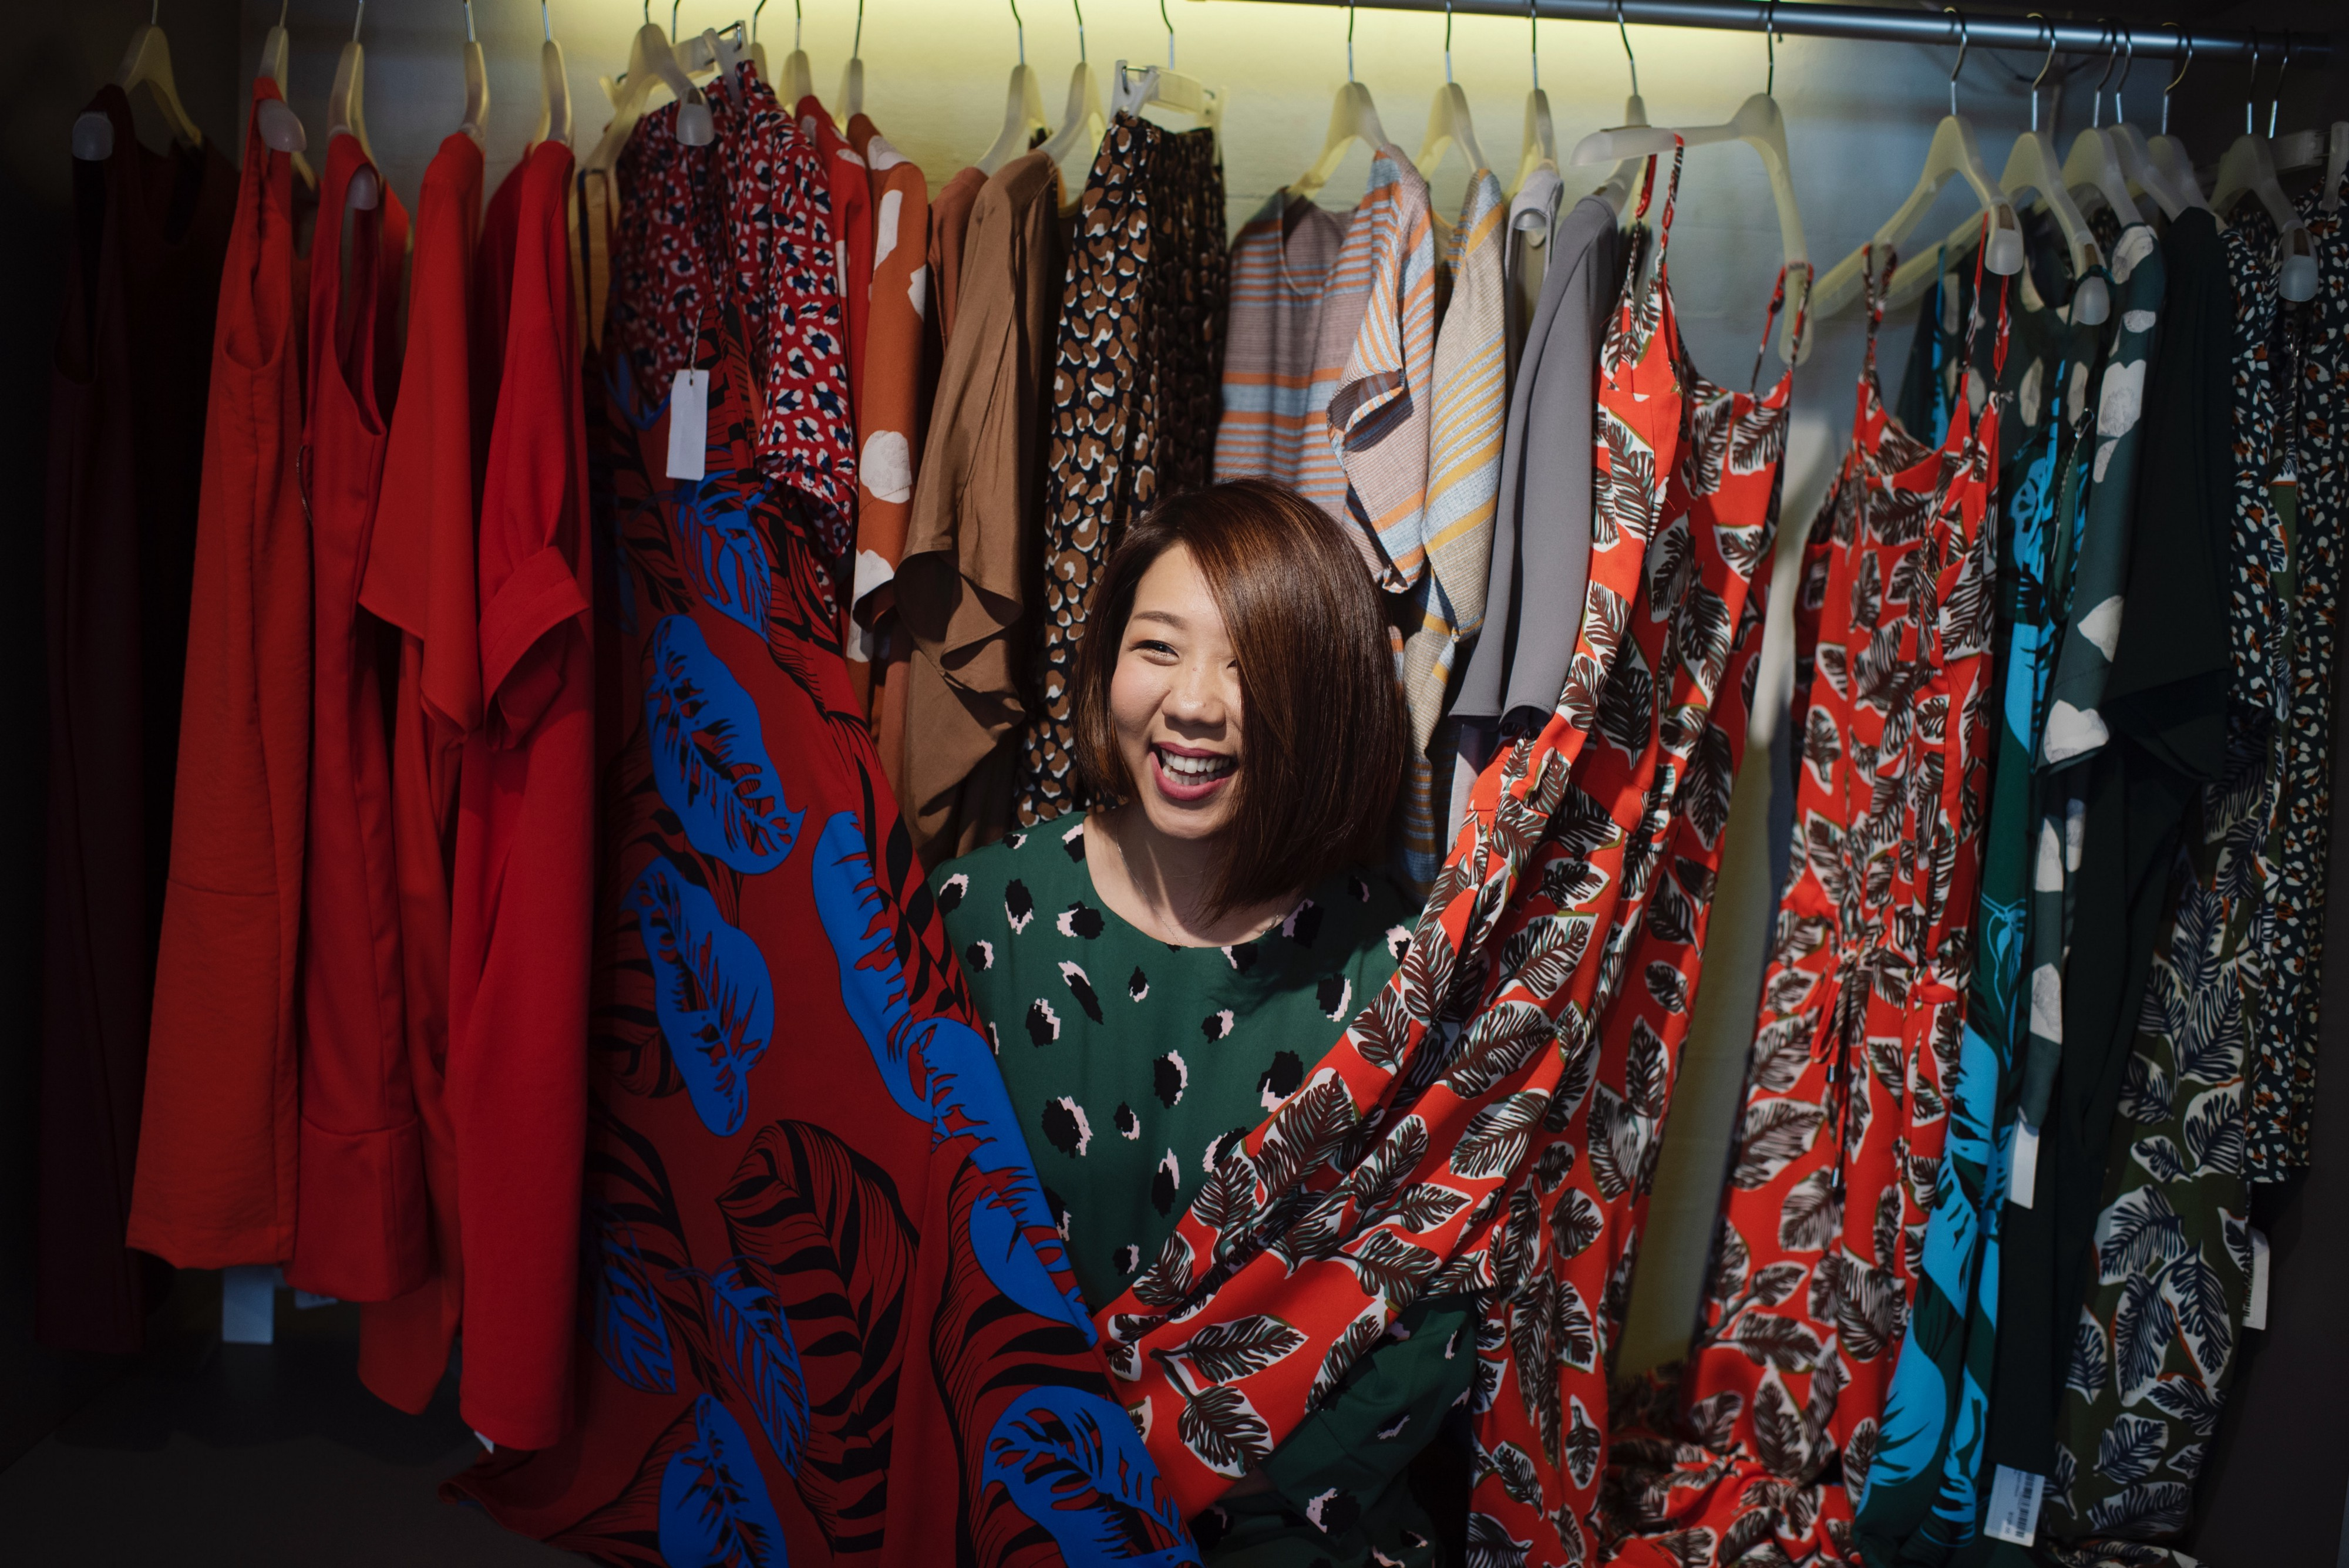 Person, probably an Asian woman, smiles among a rack full of dresses.